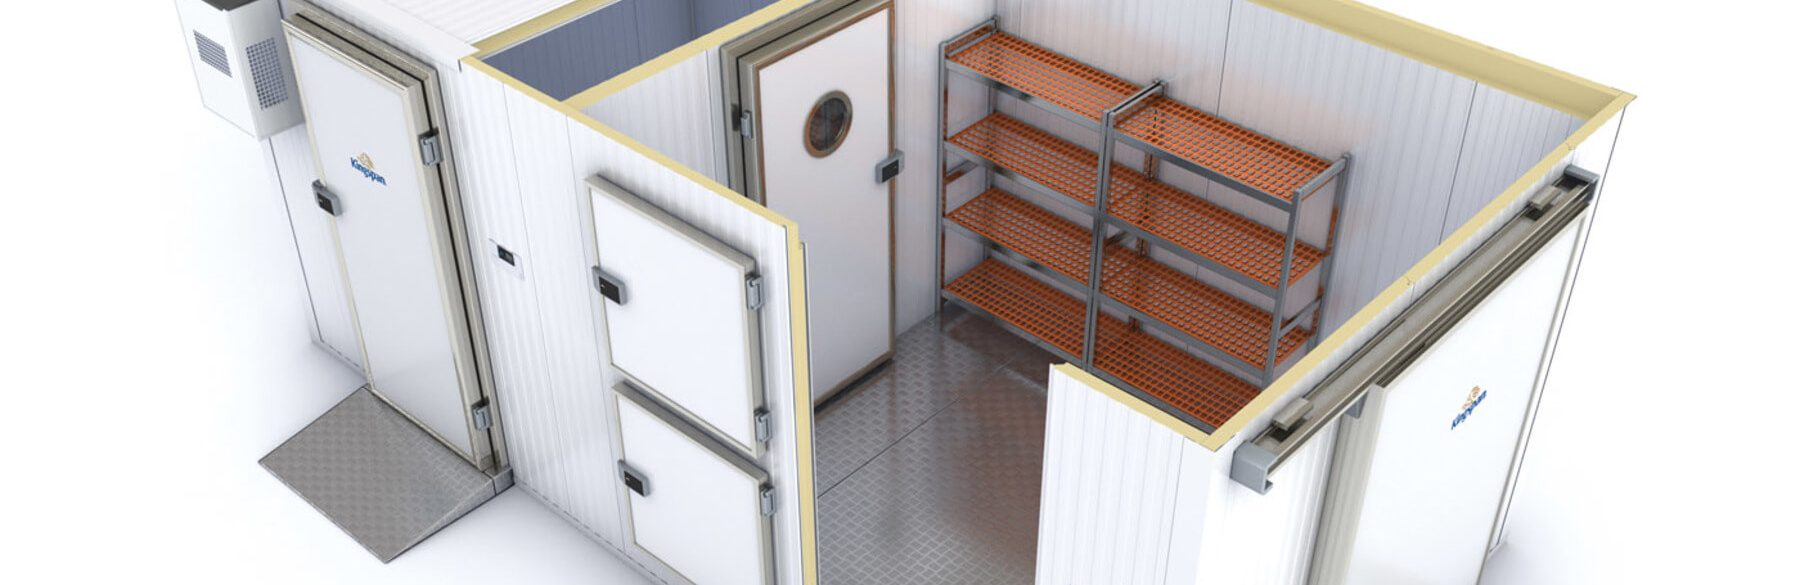 Kingspan Modular & Bespoke Cold Room Installers in Cornwall